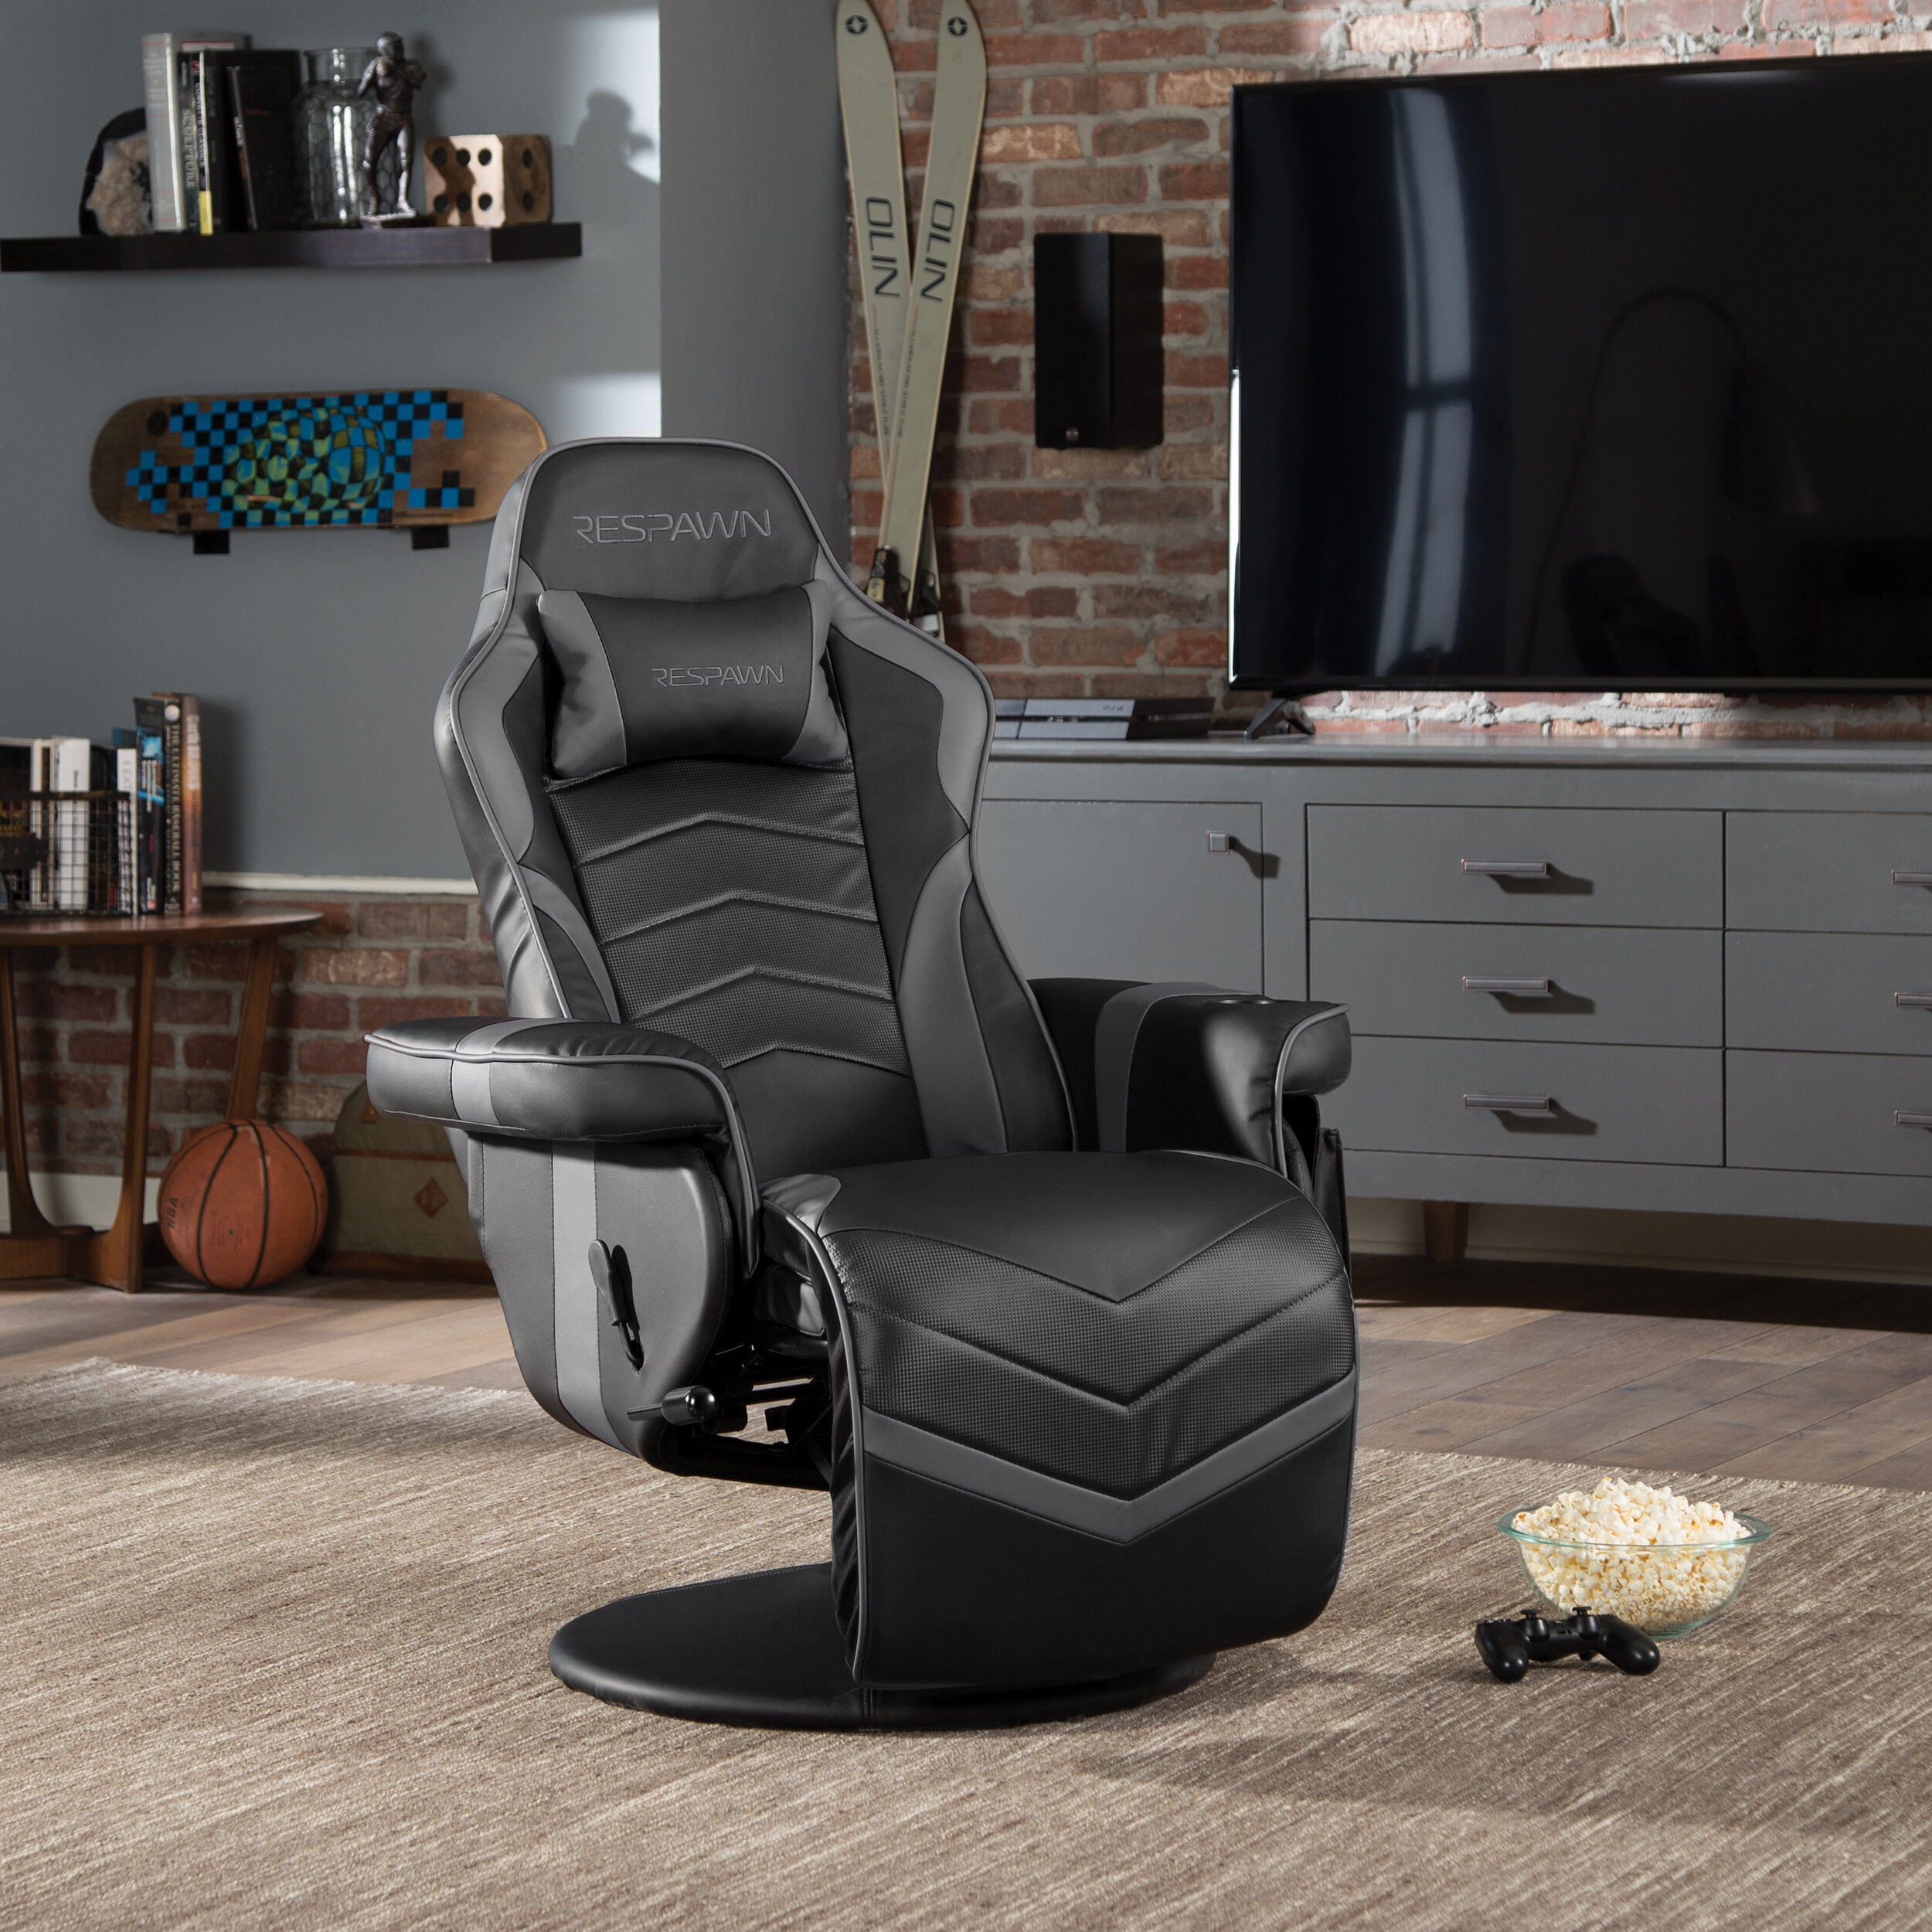 Astonishing Respawn Recliner Racing Game Chair Reviews Wayfair Caraccident5 Cool Chair Designs And Ideas Caraccident5Info